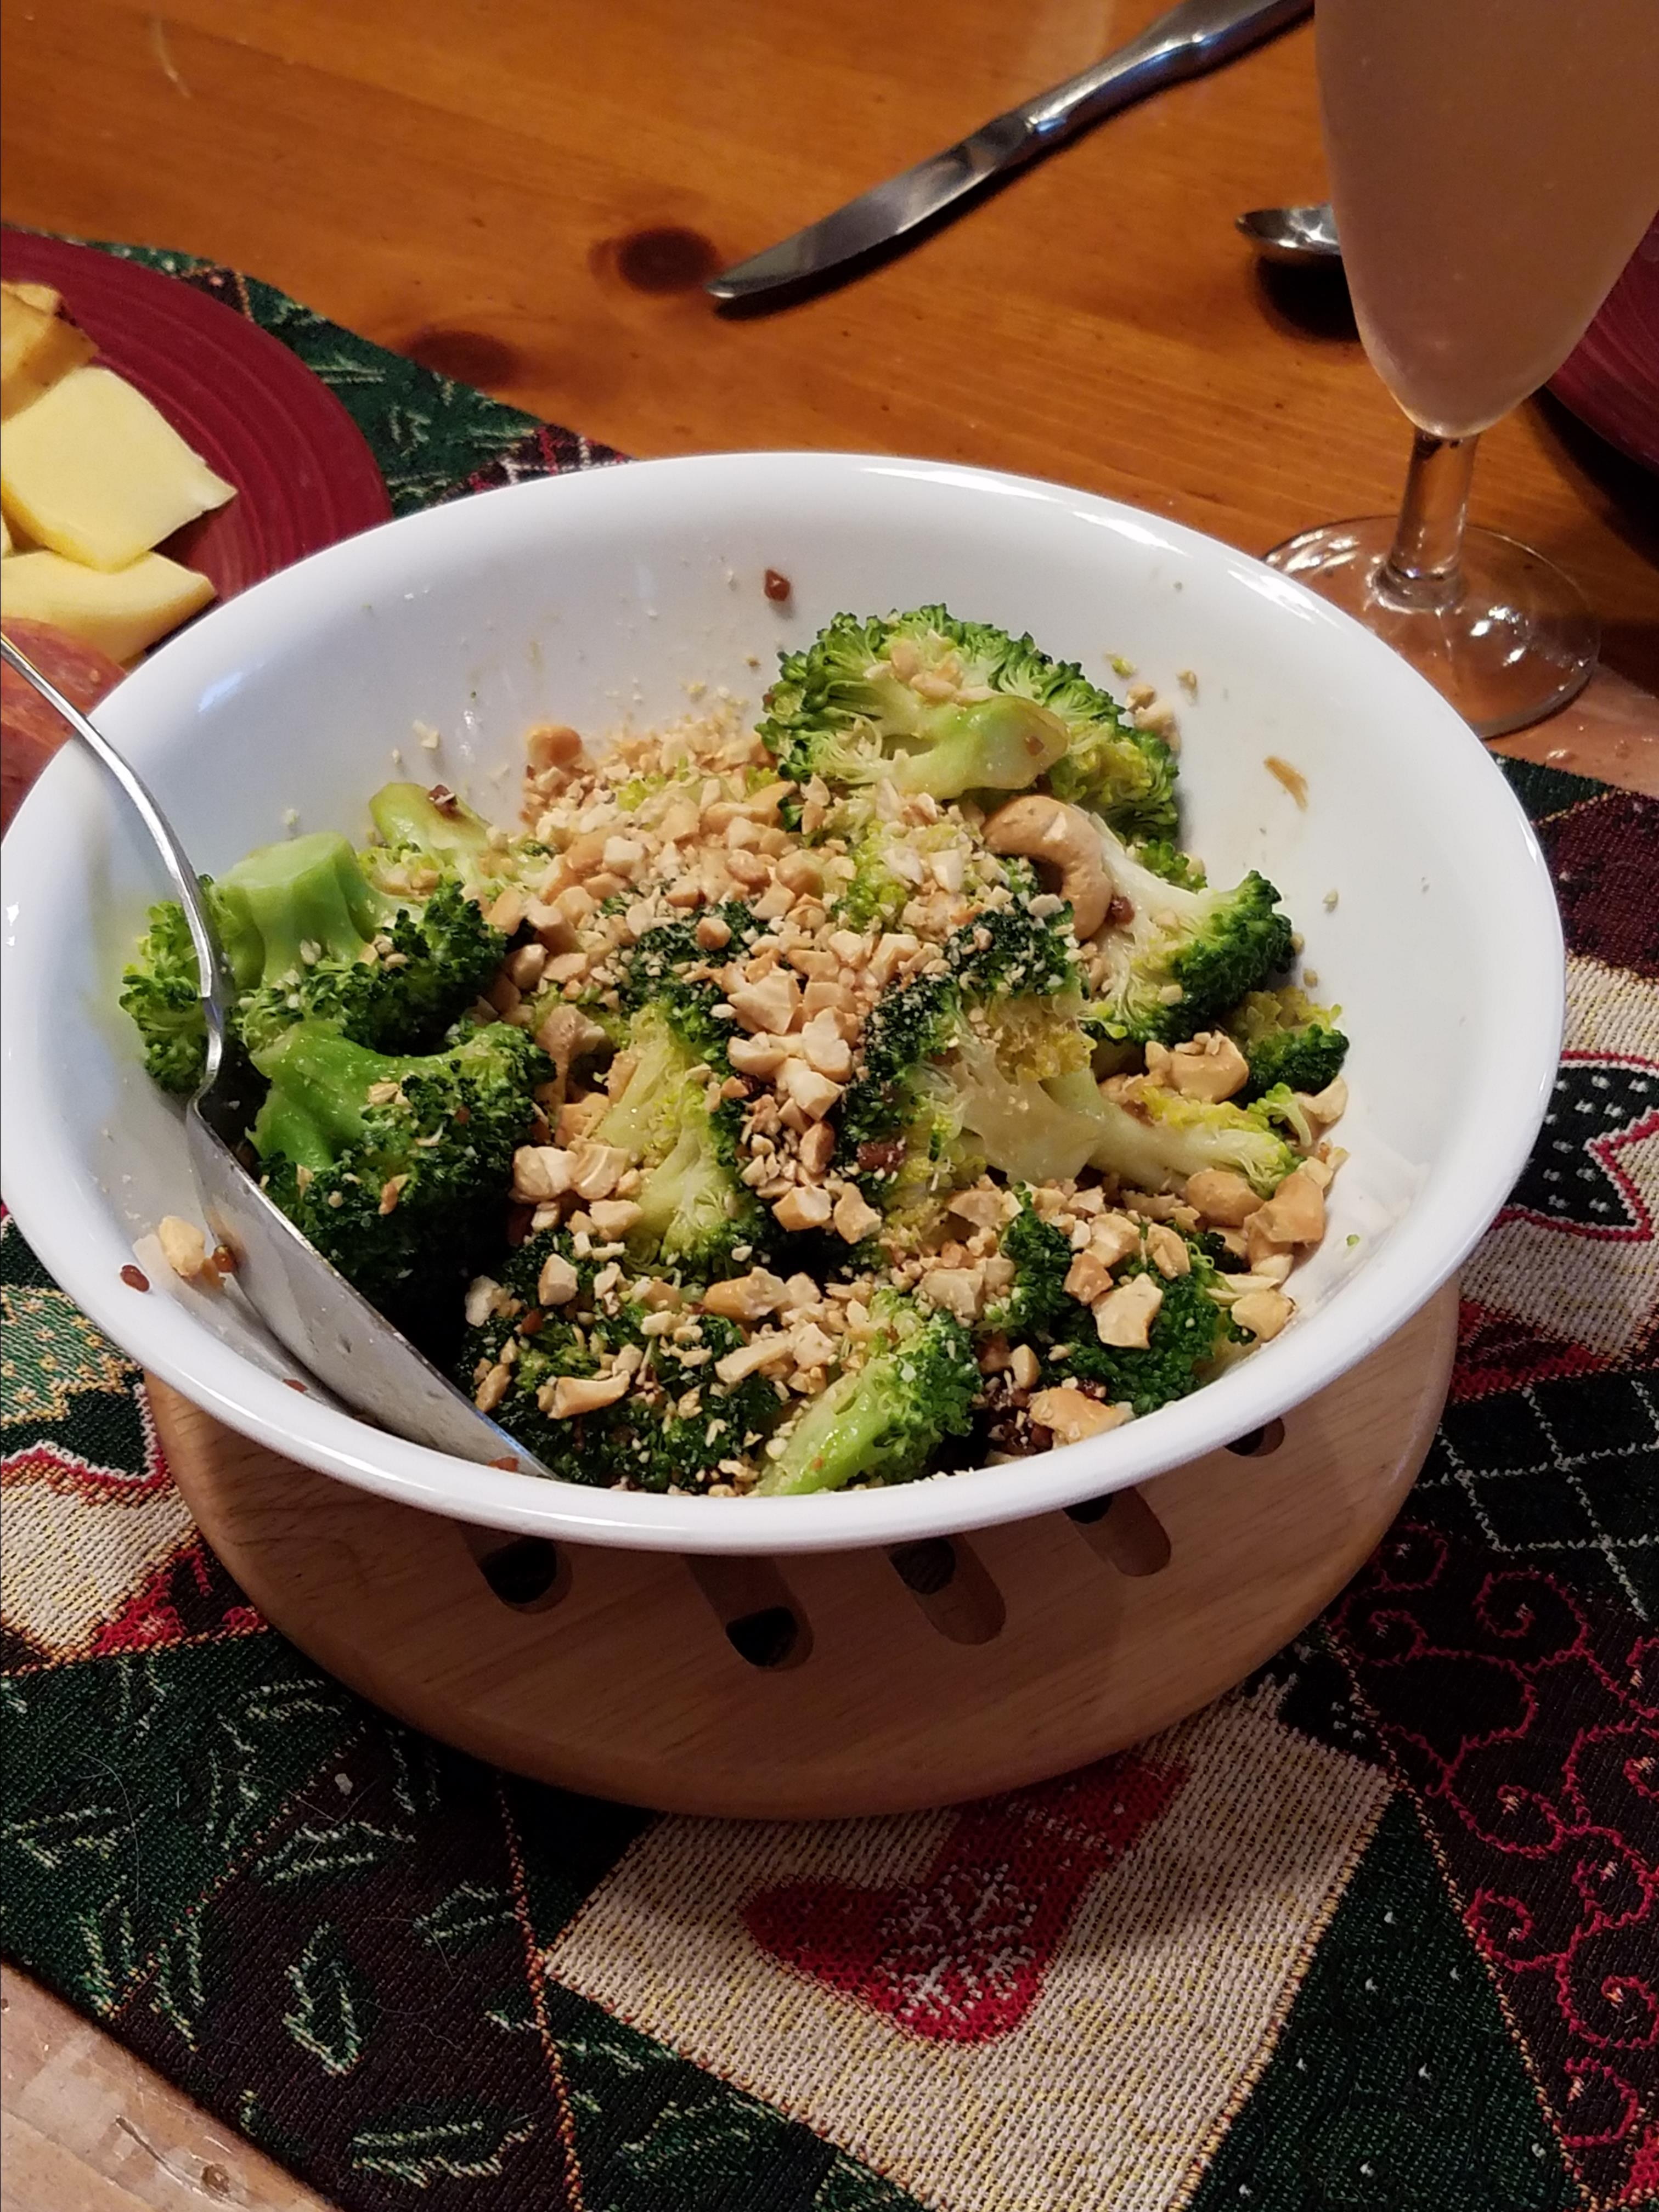 Broccoli with Garlic Butter and Cashews Chanel